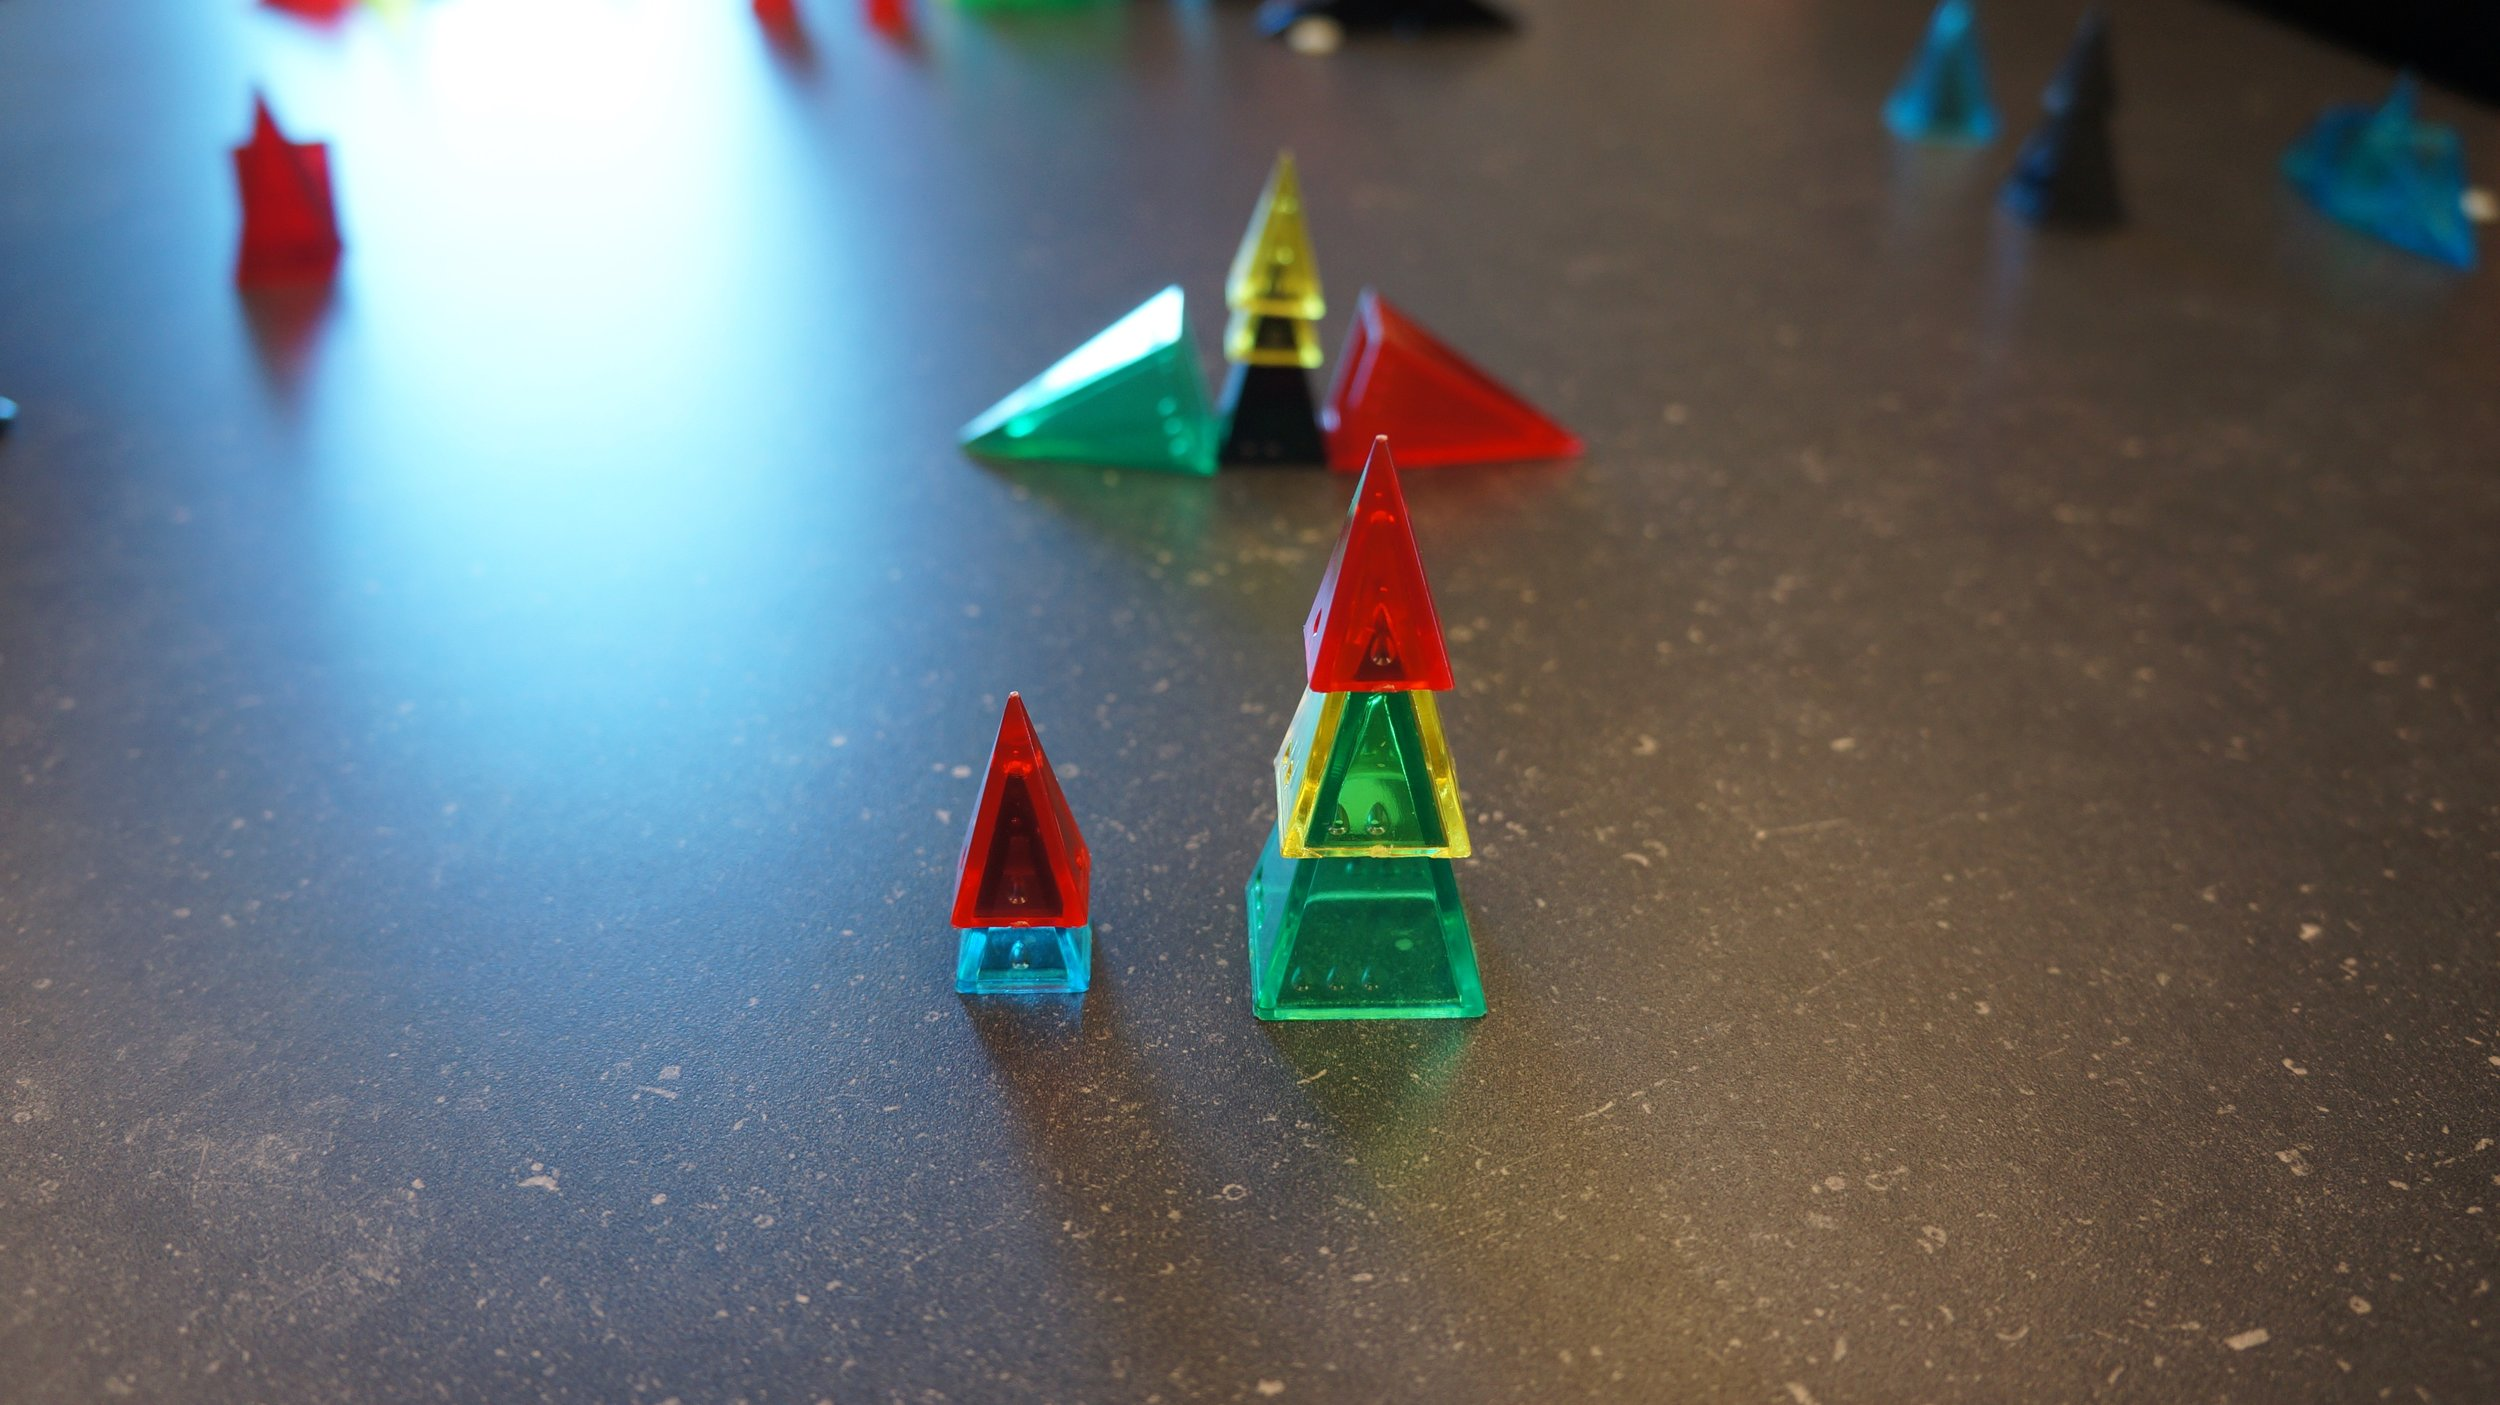 Zendo - a great game for learning about the scientific method and critical thinking.